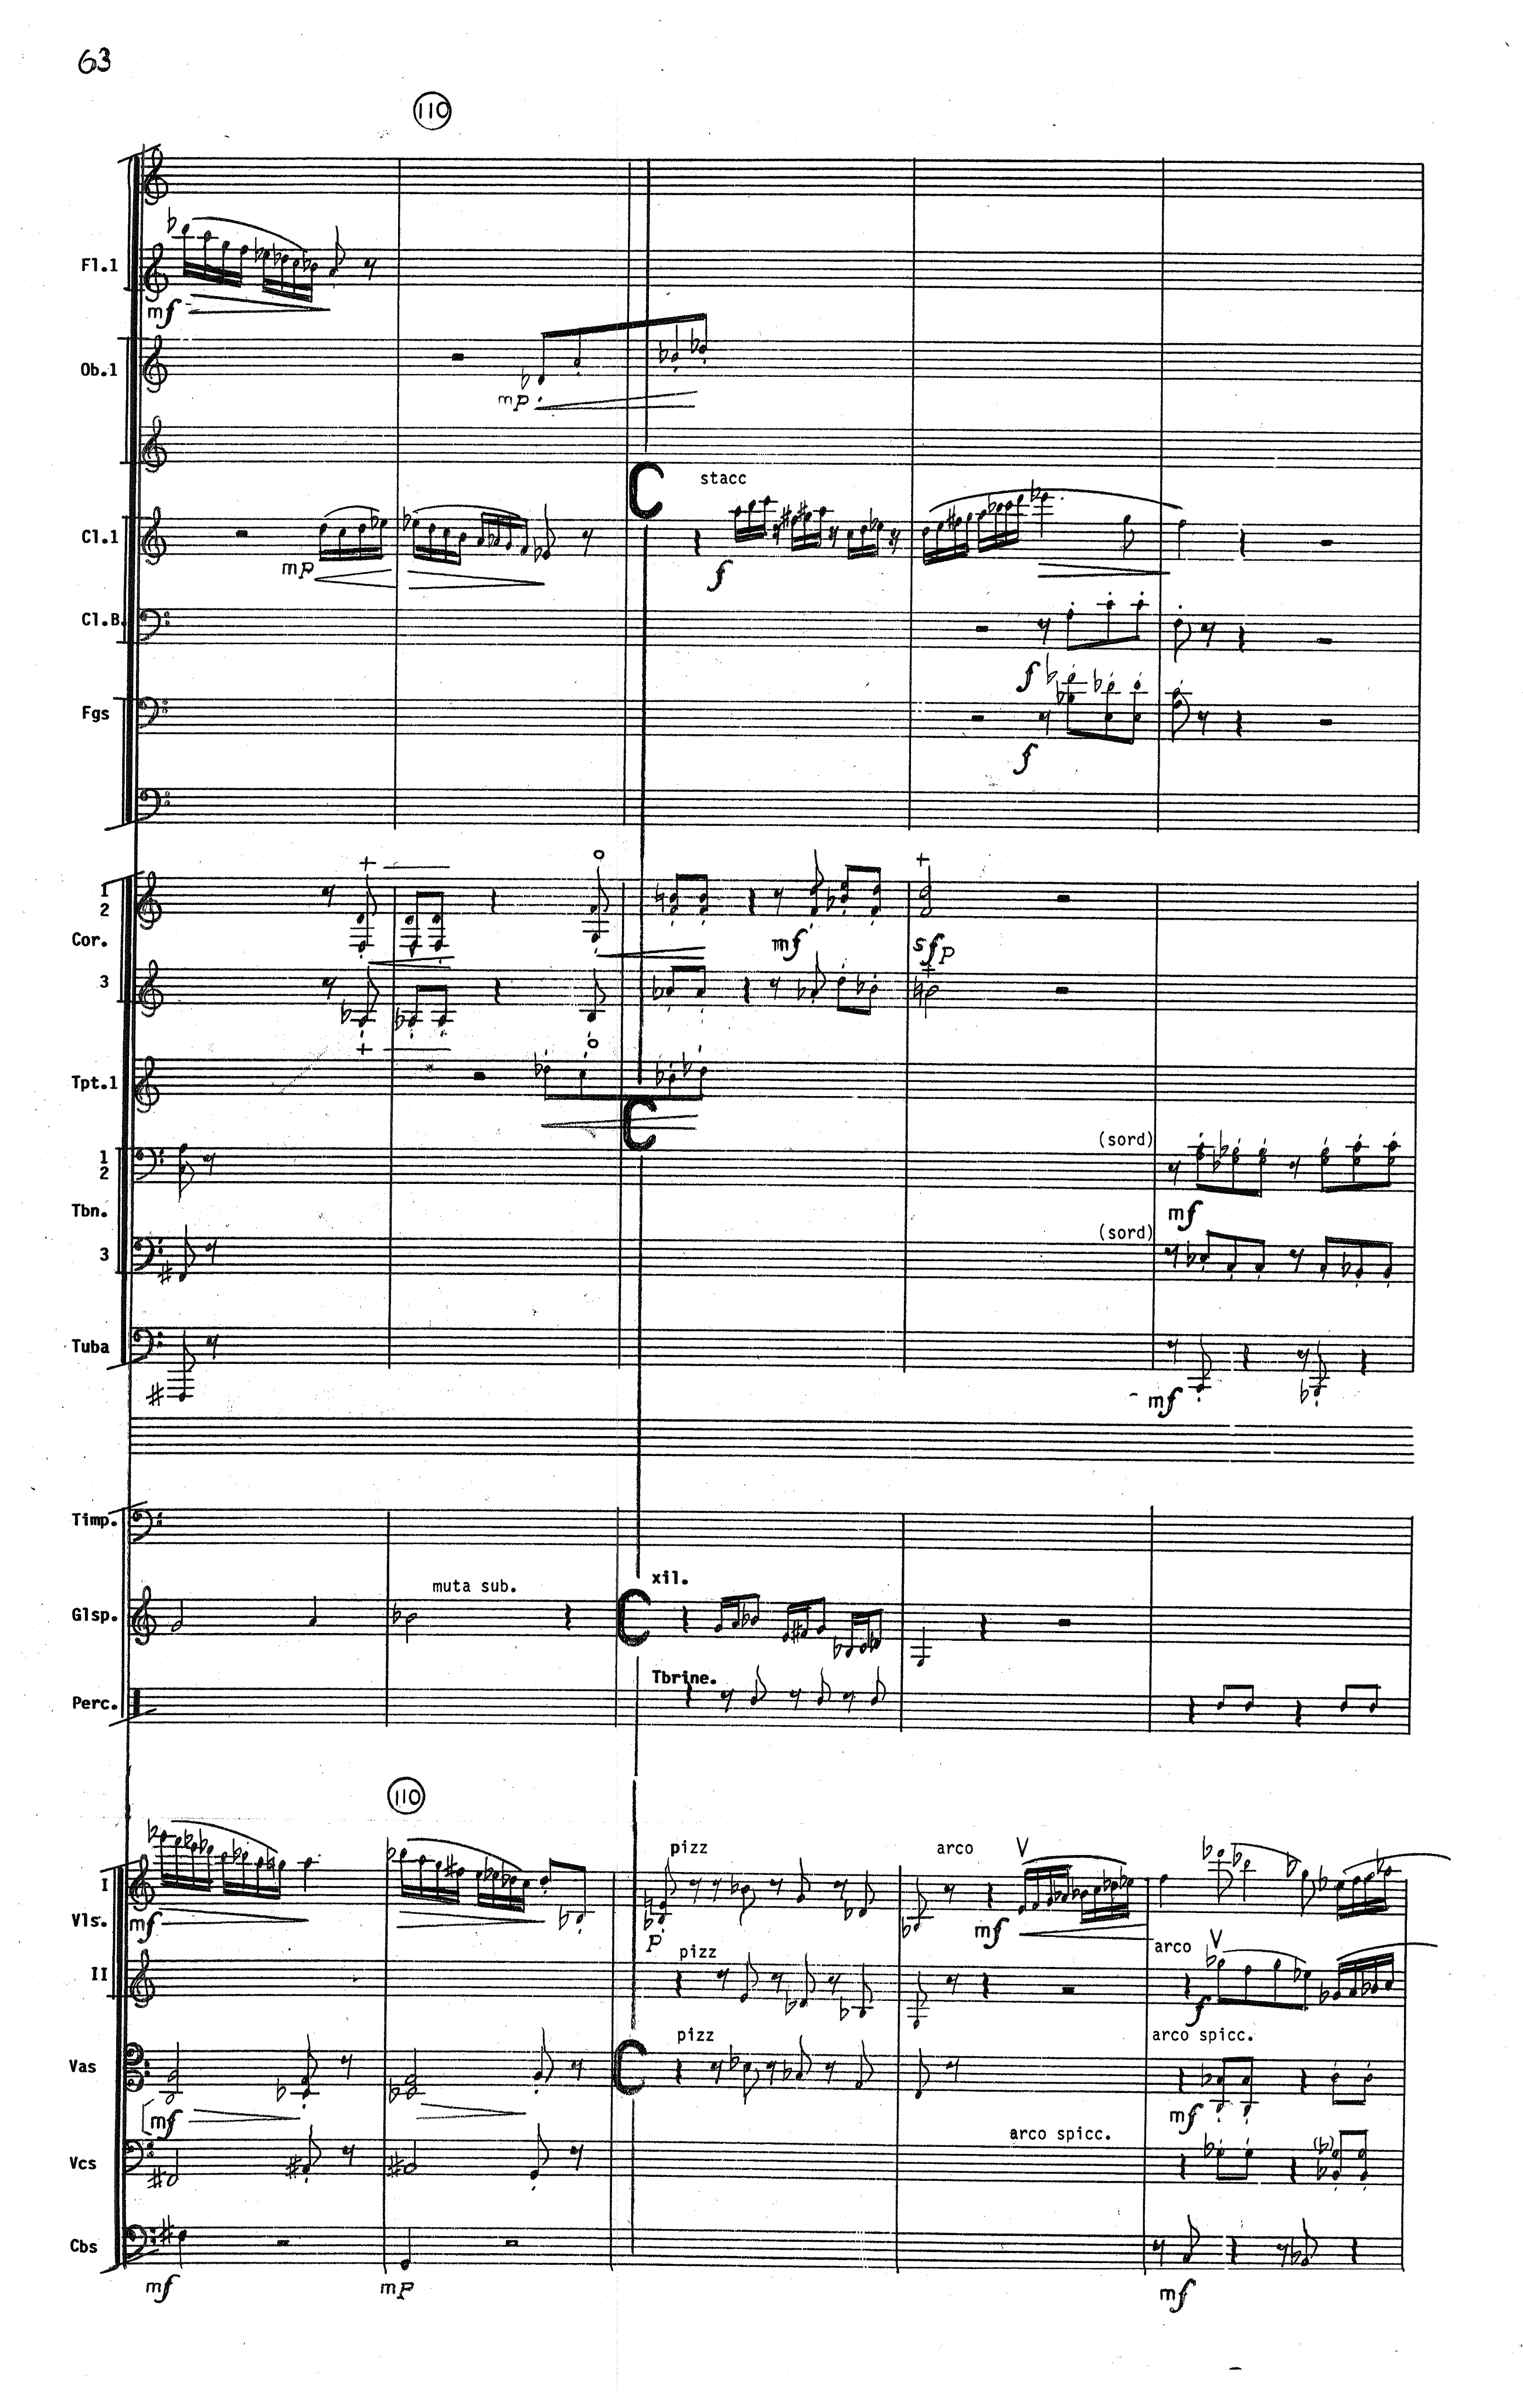 Excerpt from the score of Orrego-Salas' 5th Symphony